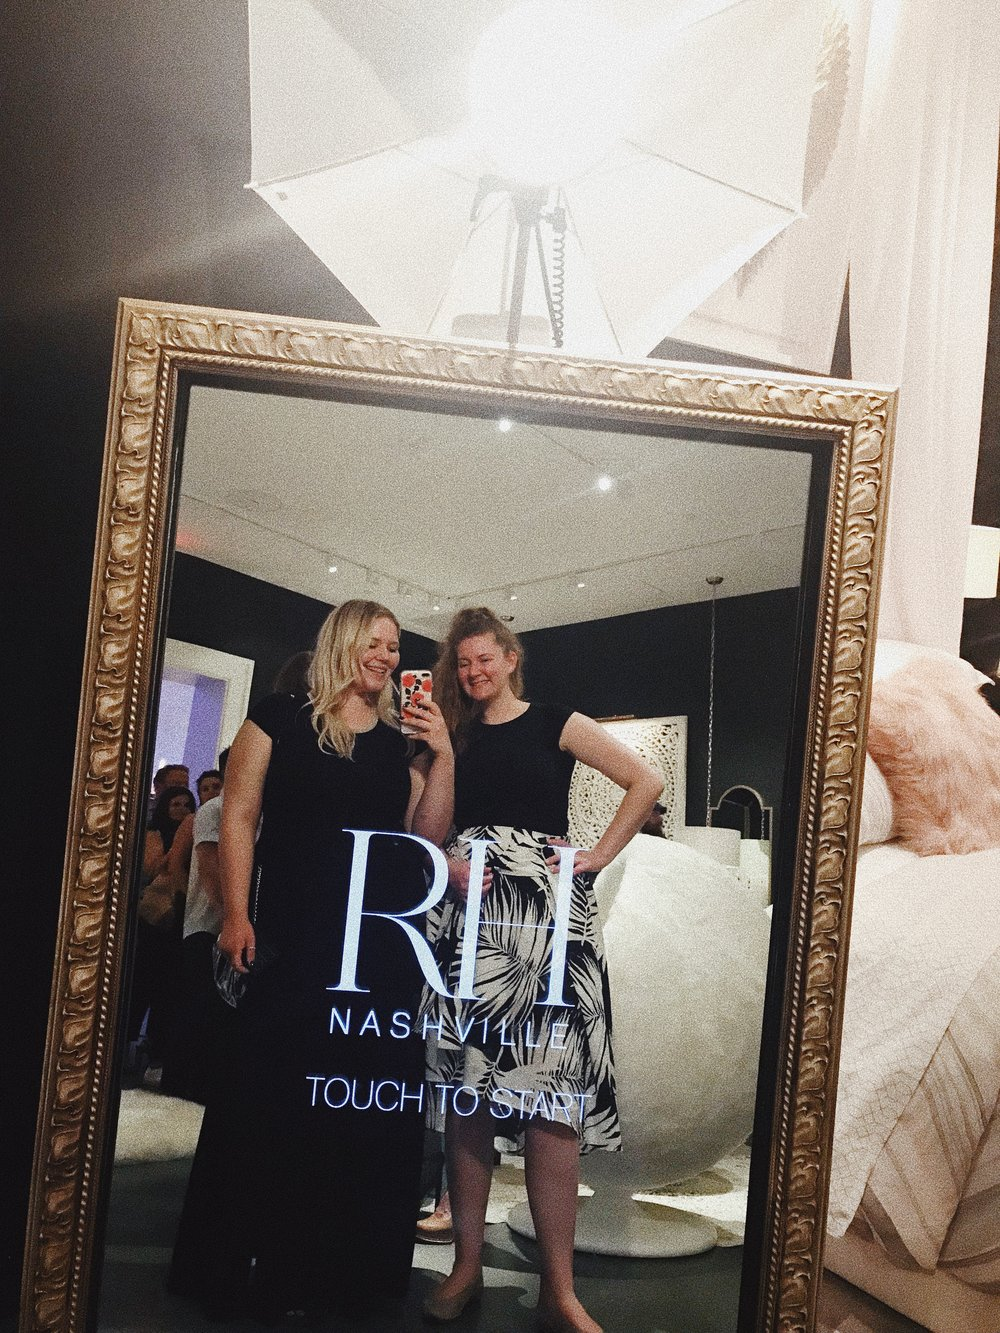 My sister, Kourtney, and I attended the event and mingled with Nashville's creatives, entrepreneurs, and industry professionals. The new RH space is SO beautiful and feels more luxurious than other Nashville hotspots. The four-story building offered a signature drink on each floor, a candy bar, and a Photo Booth.